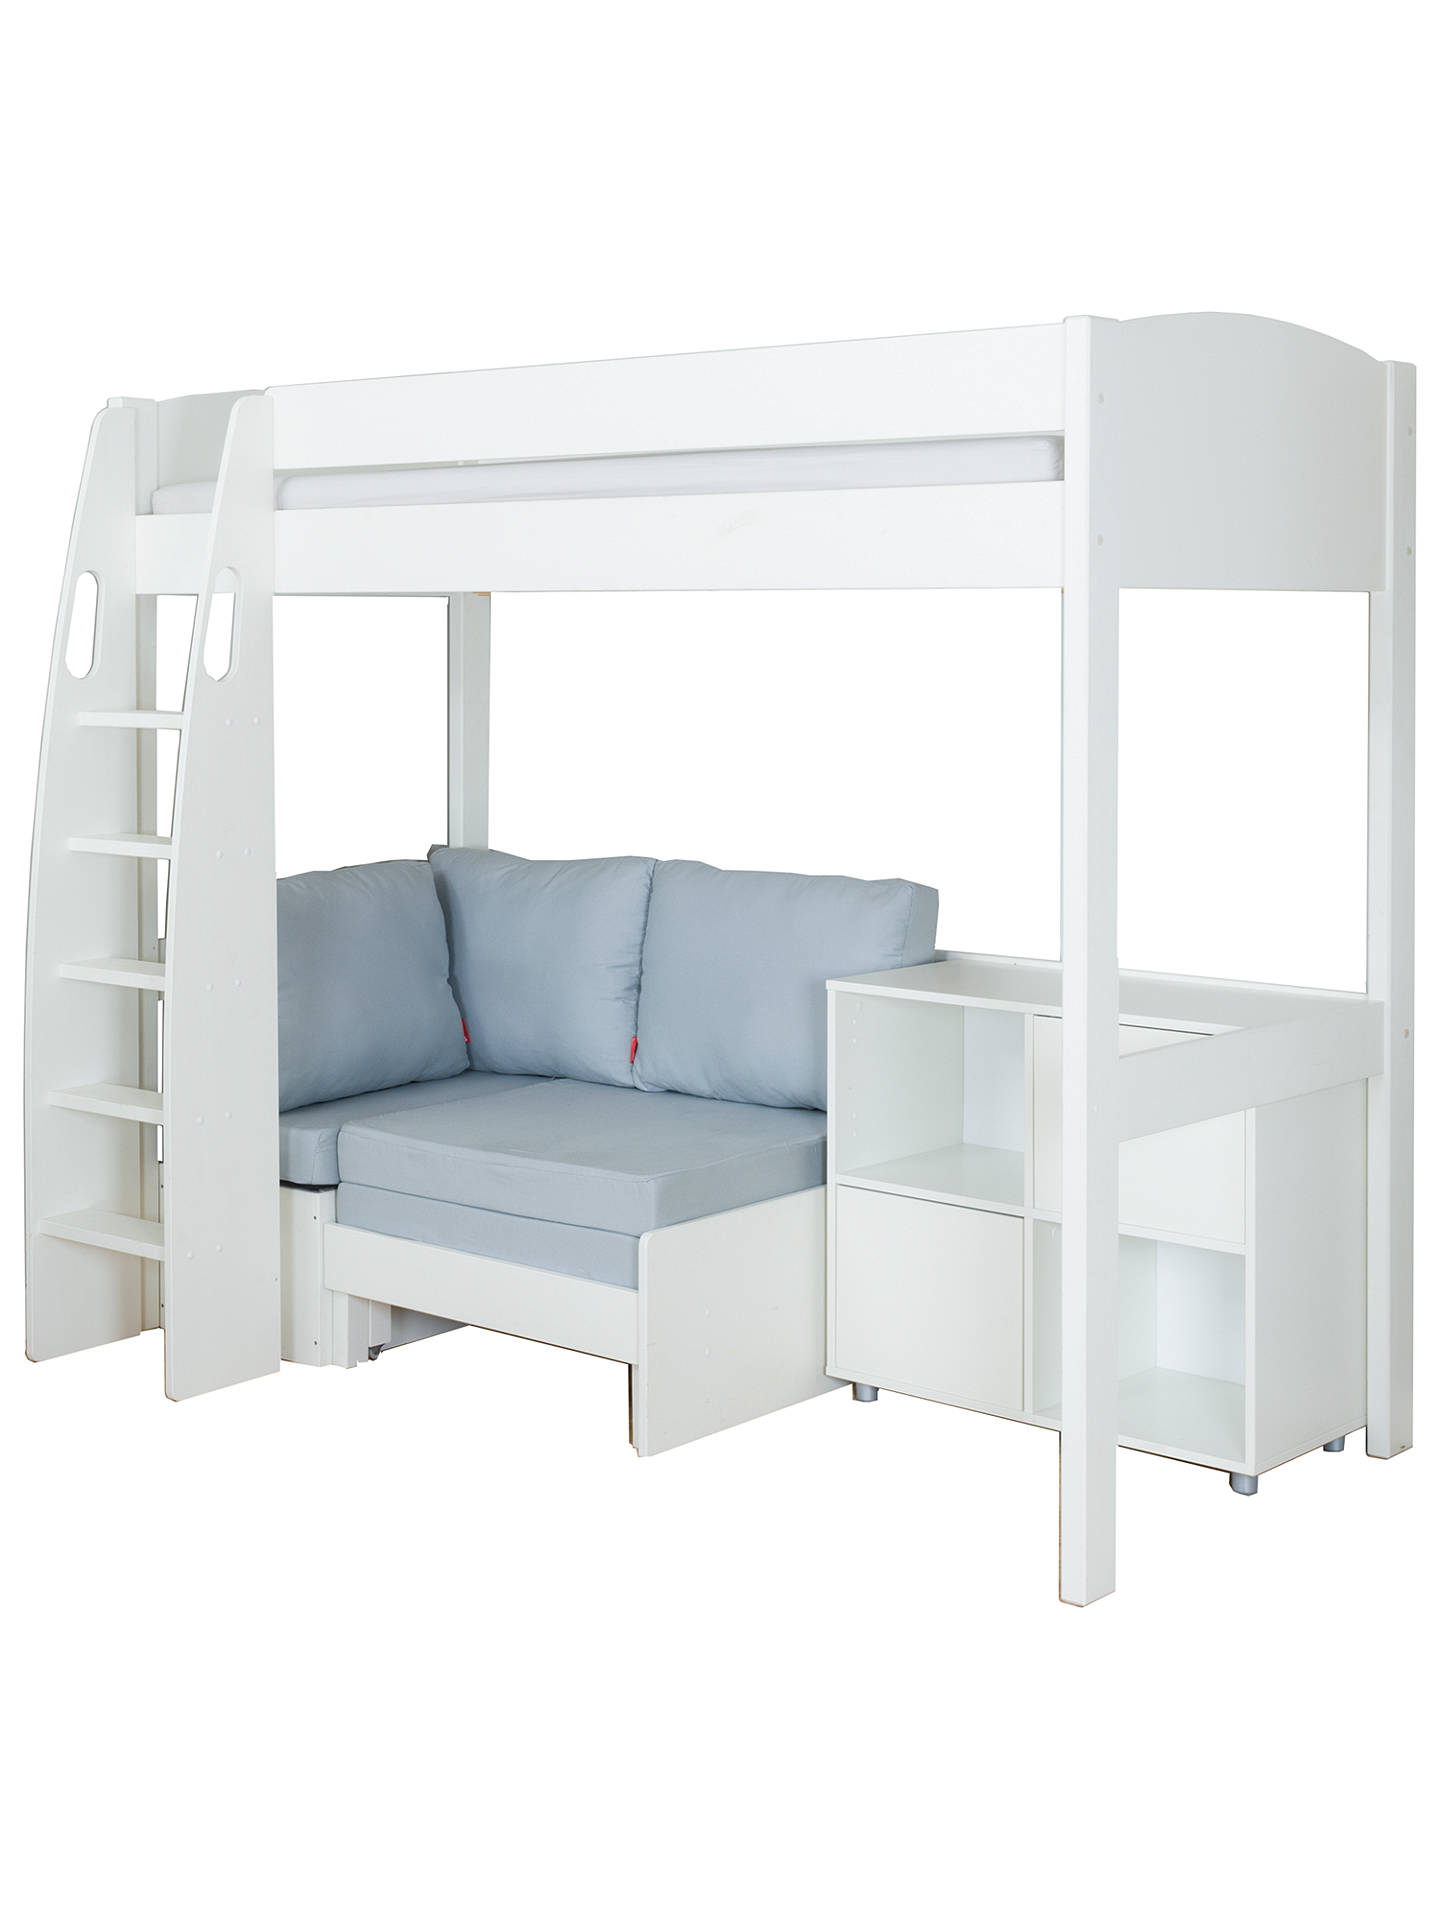 Buy Stompa Uno S Plus High-Sleeper with White Headboard, Grey Chair Bed and 2 Door Cube Unit, Grey/White Online at johnlewis.com